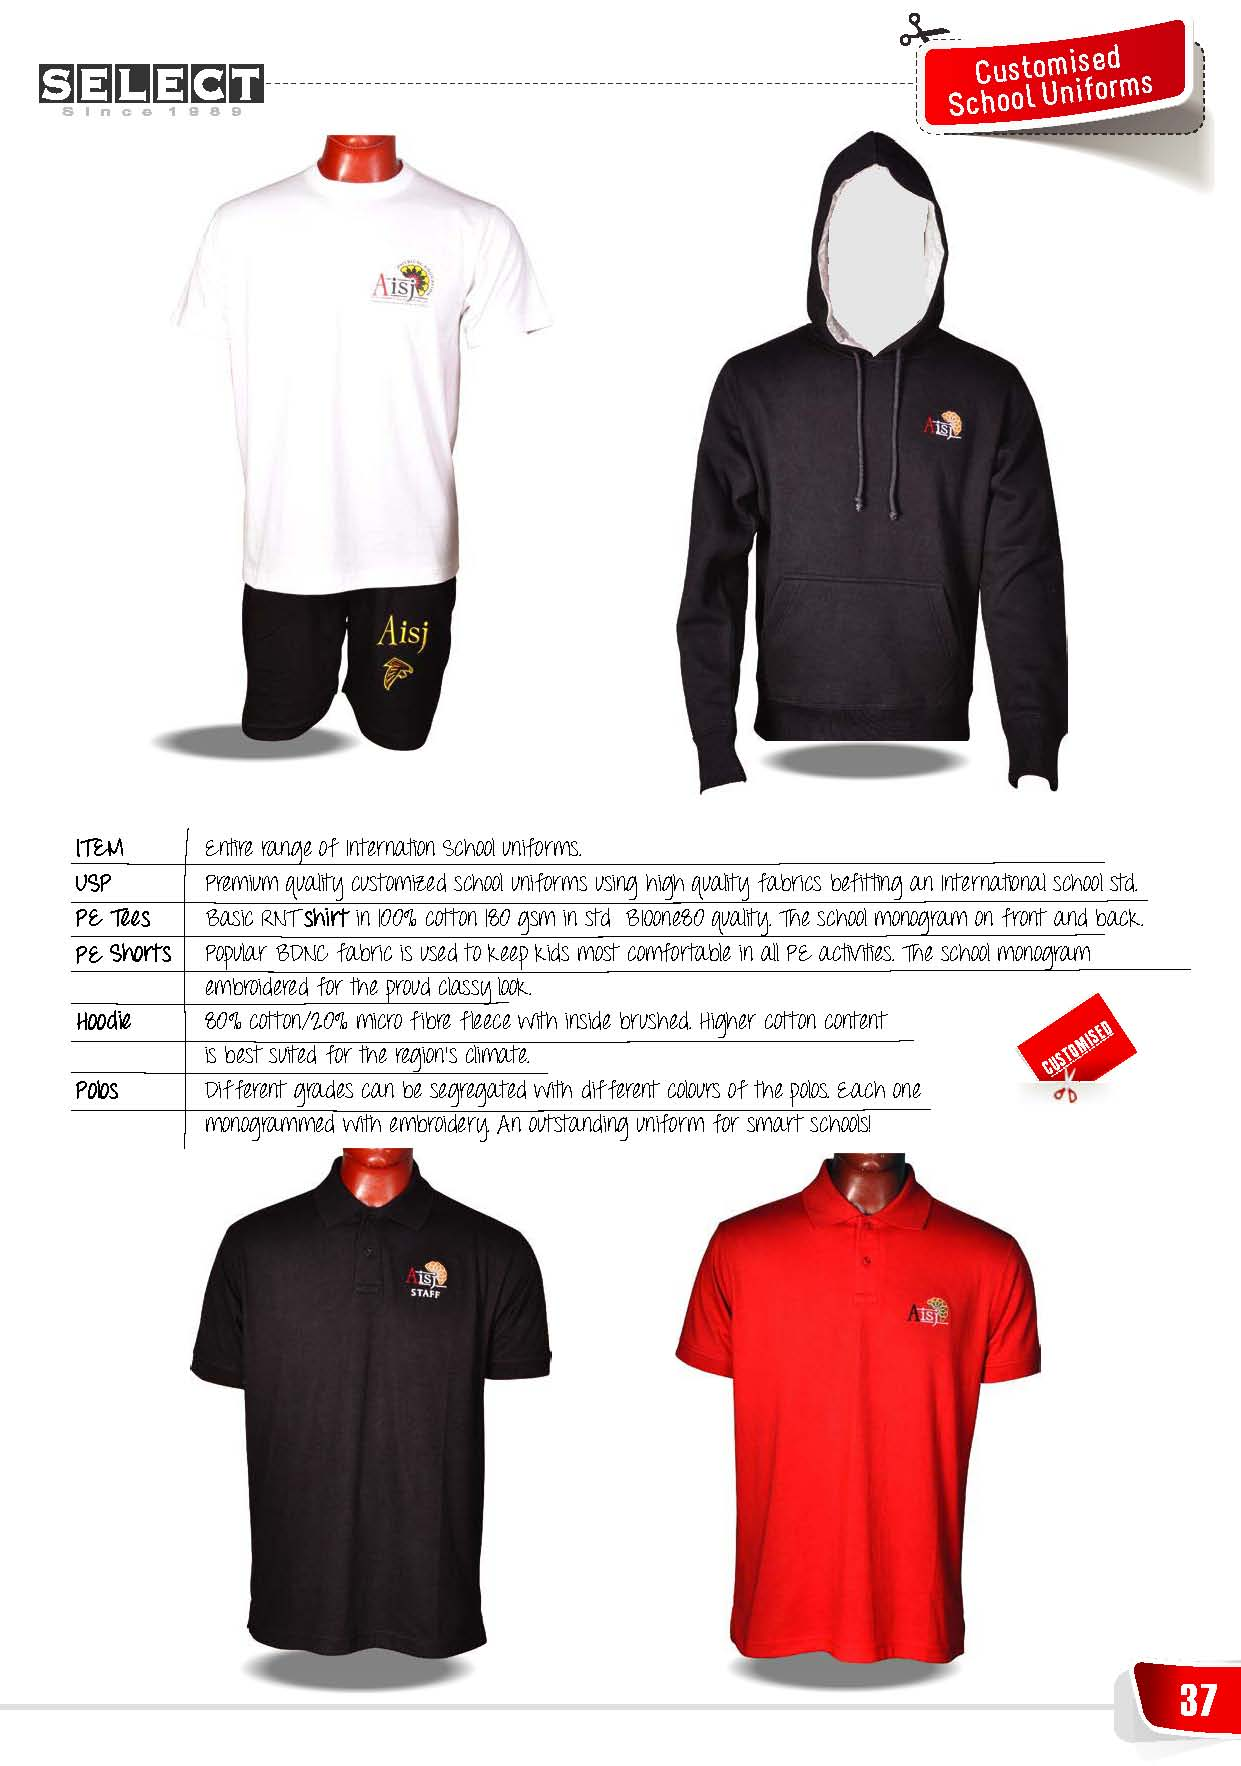 Jackets and Sports wear